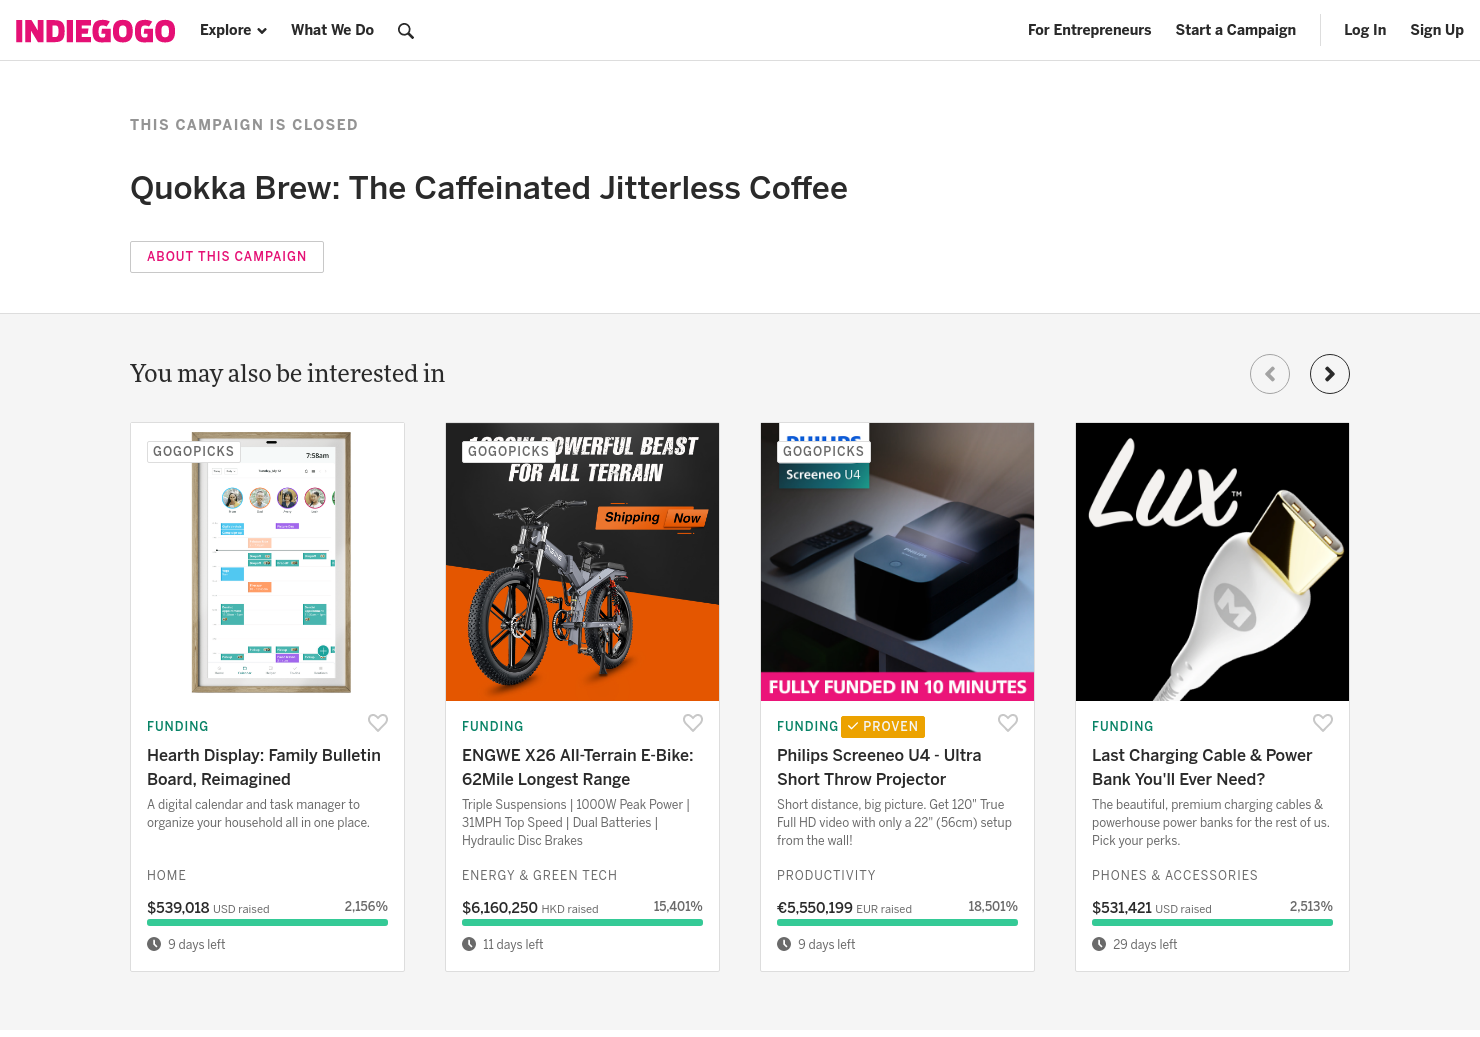 Quokka Brew Jitterless Coffee